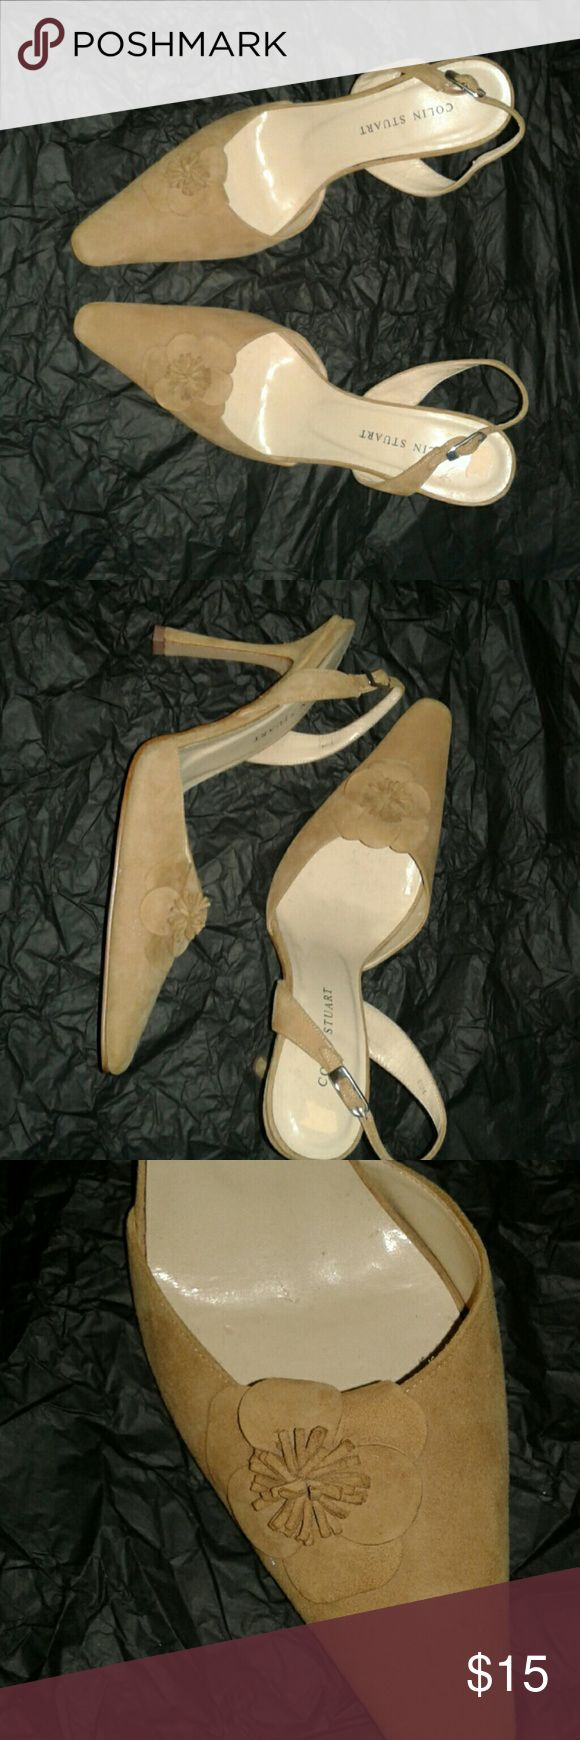 Colin stuart tan heels Tan heels by COLIN STUART with a lovely flower on both tips of the shoe in good condition Colin Stuart Shoes Heels